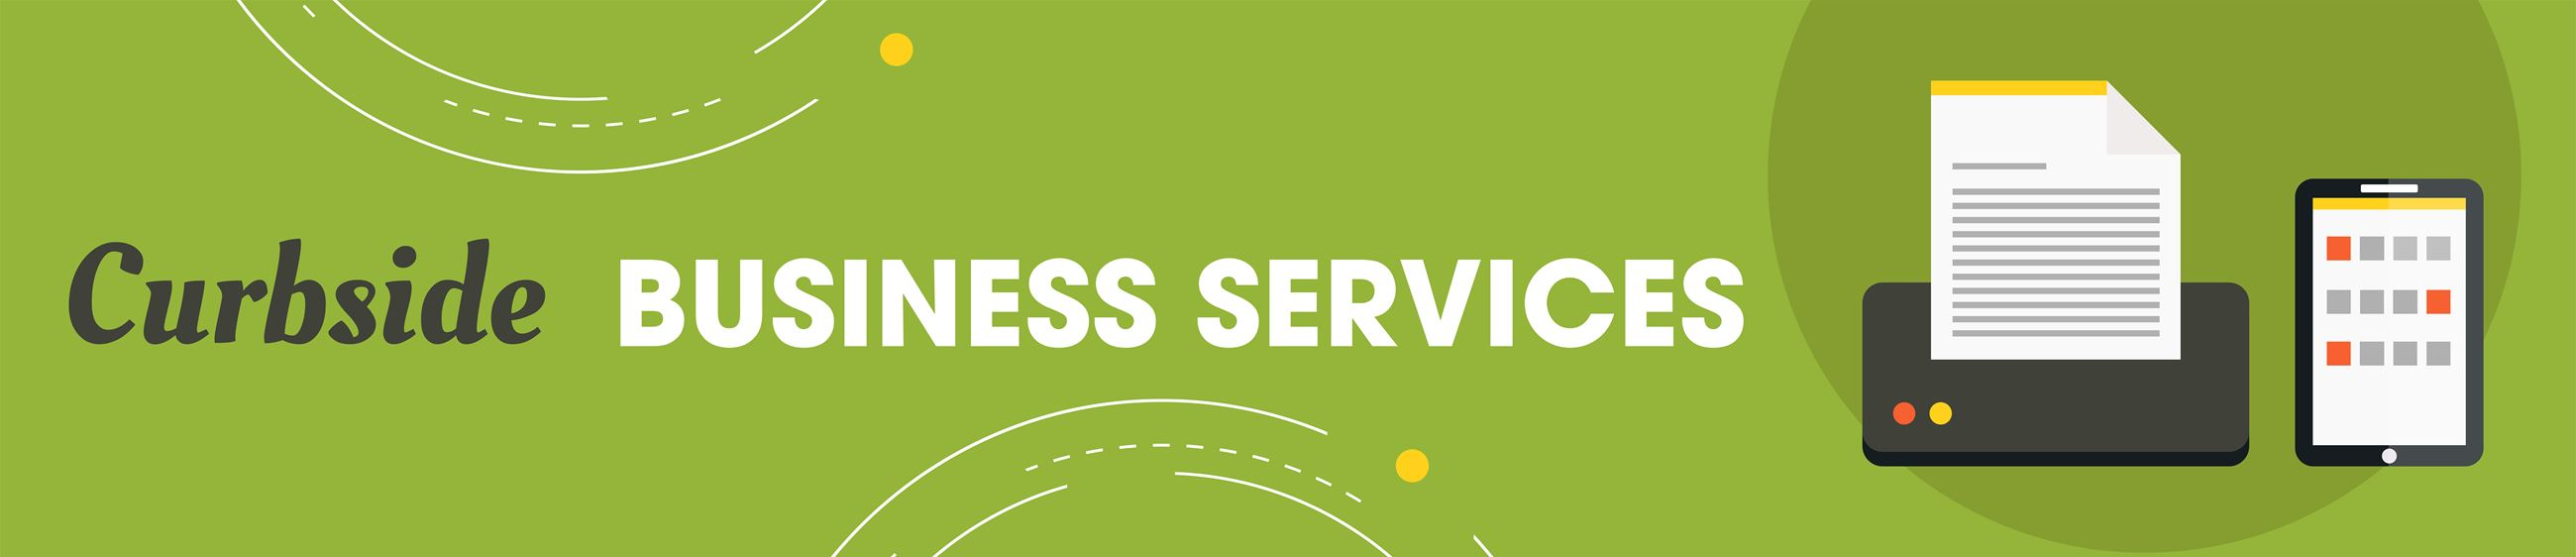 Curbside Business Services